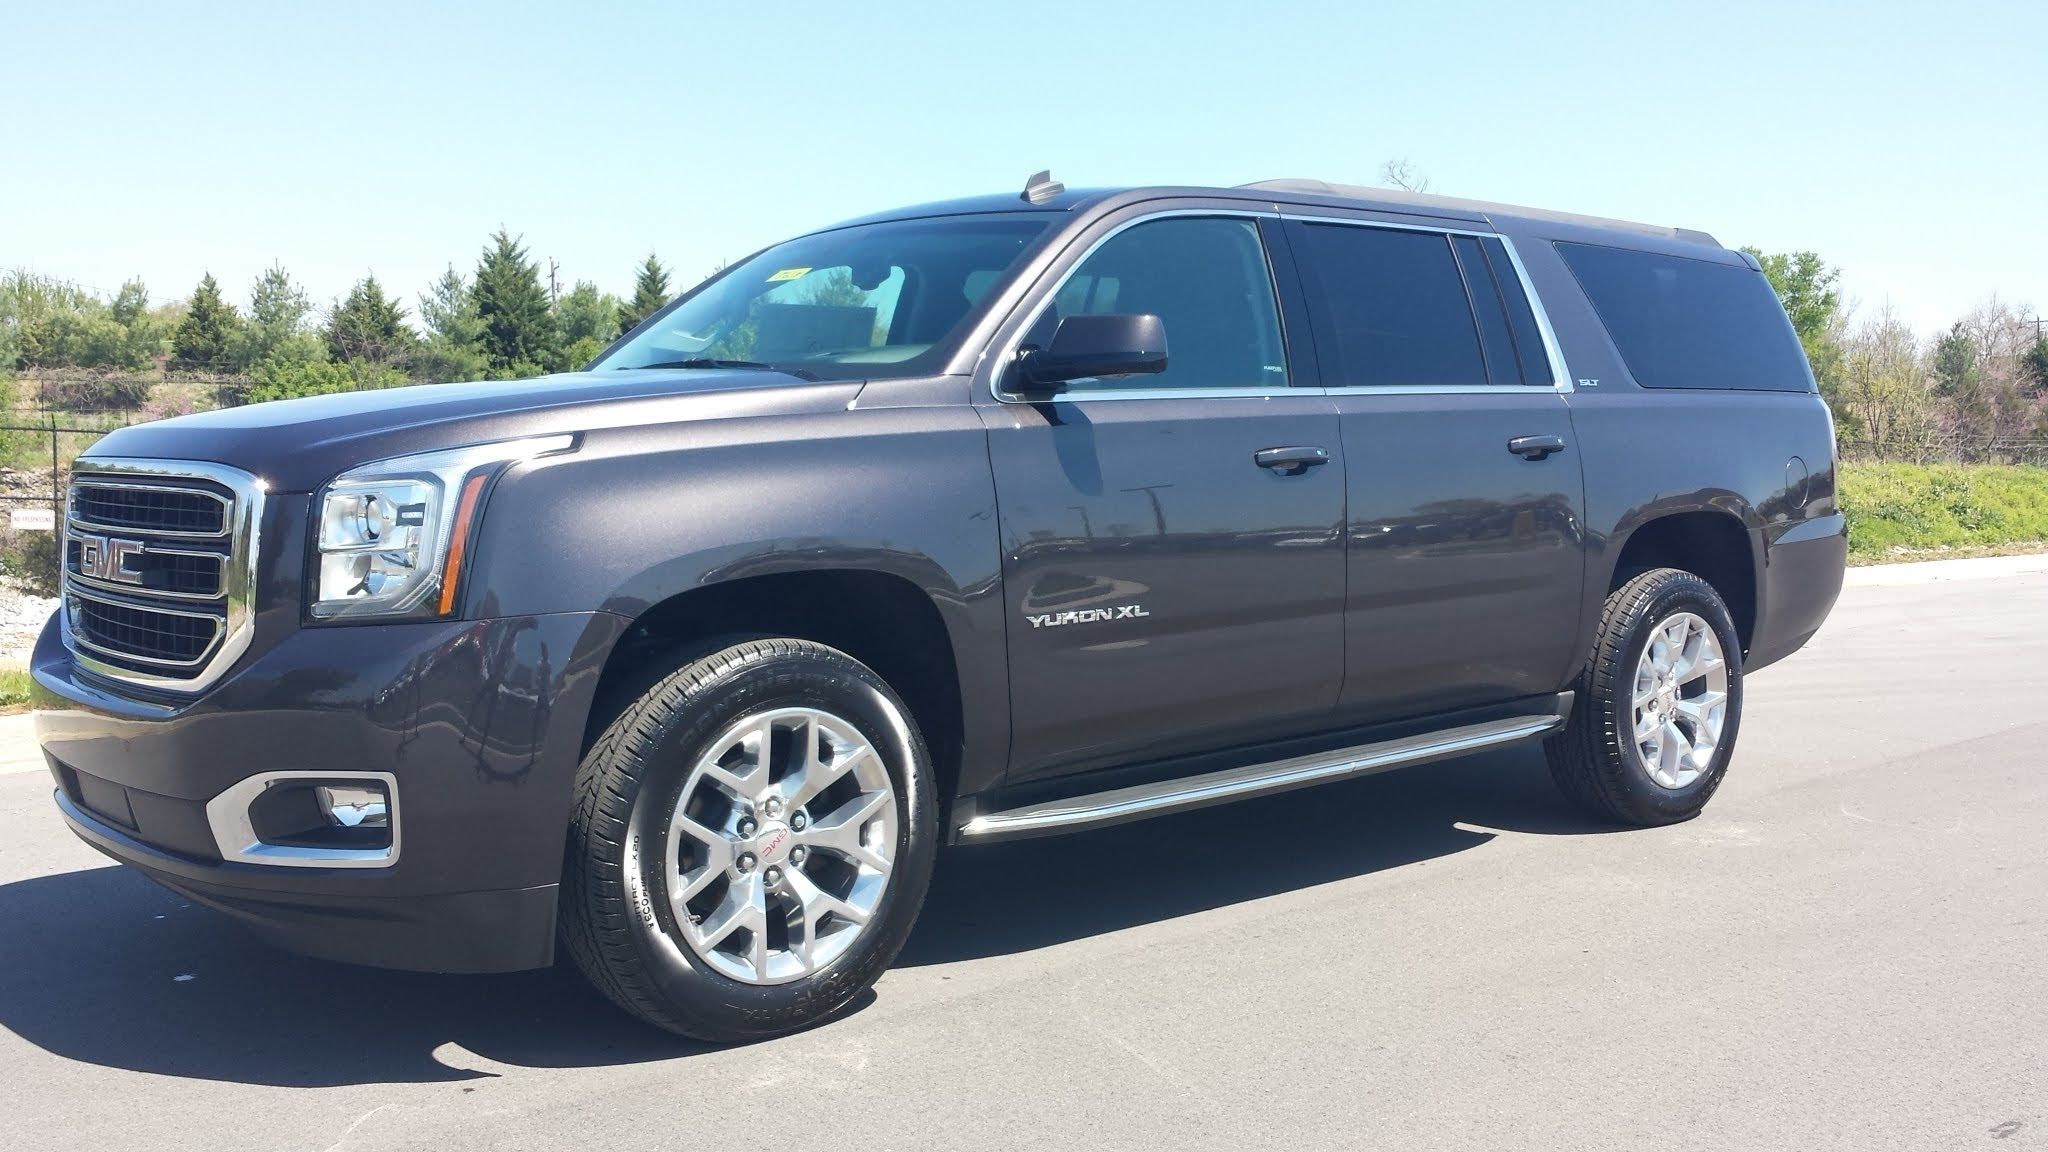 2015 Gmc Yukon Xl Slt 4wd Iridium Metallic 20 S Walk Around And